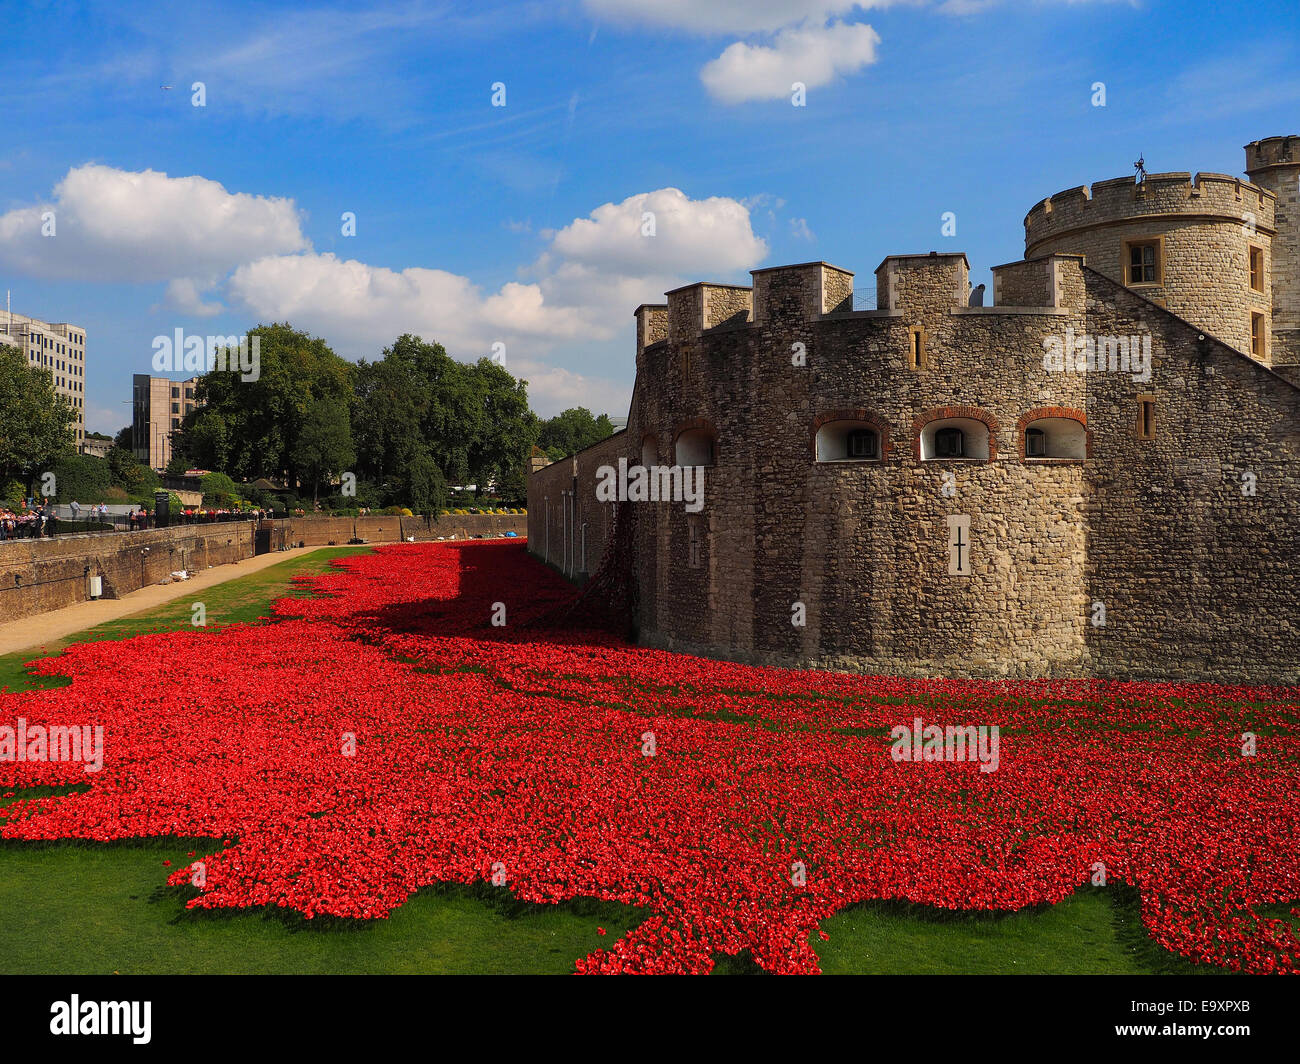 Red Poppies Art Installation at the Tower of London Moat in Commemoration of the First World War - Stock Image